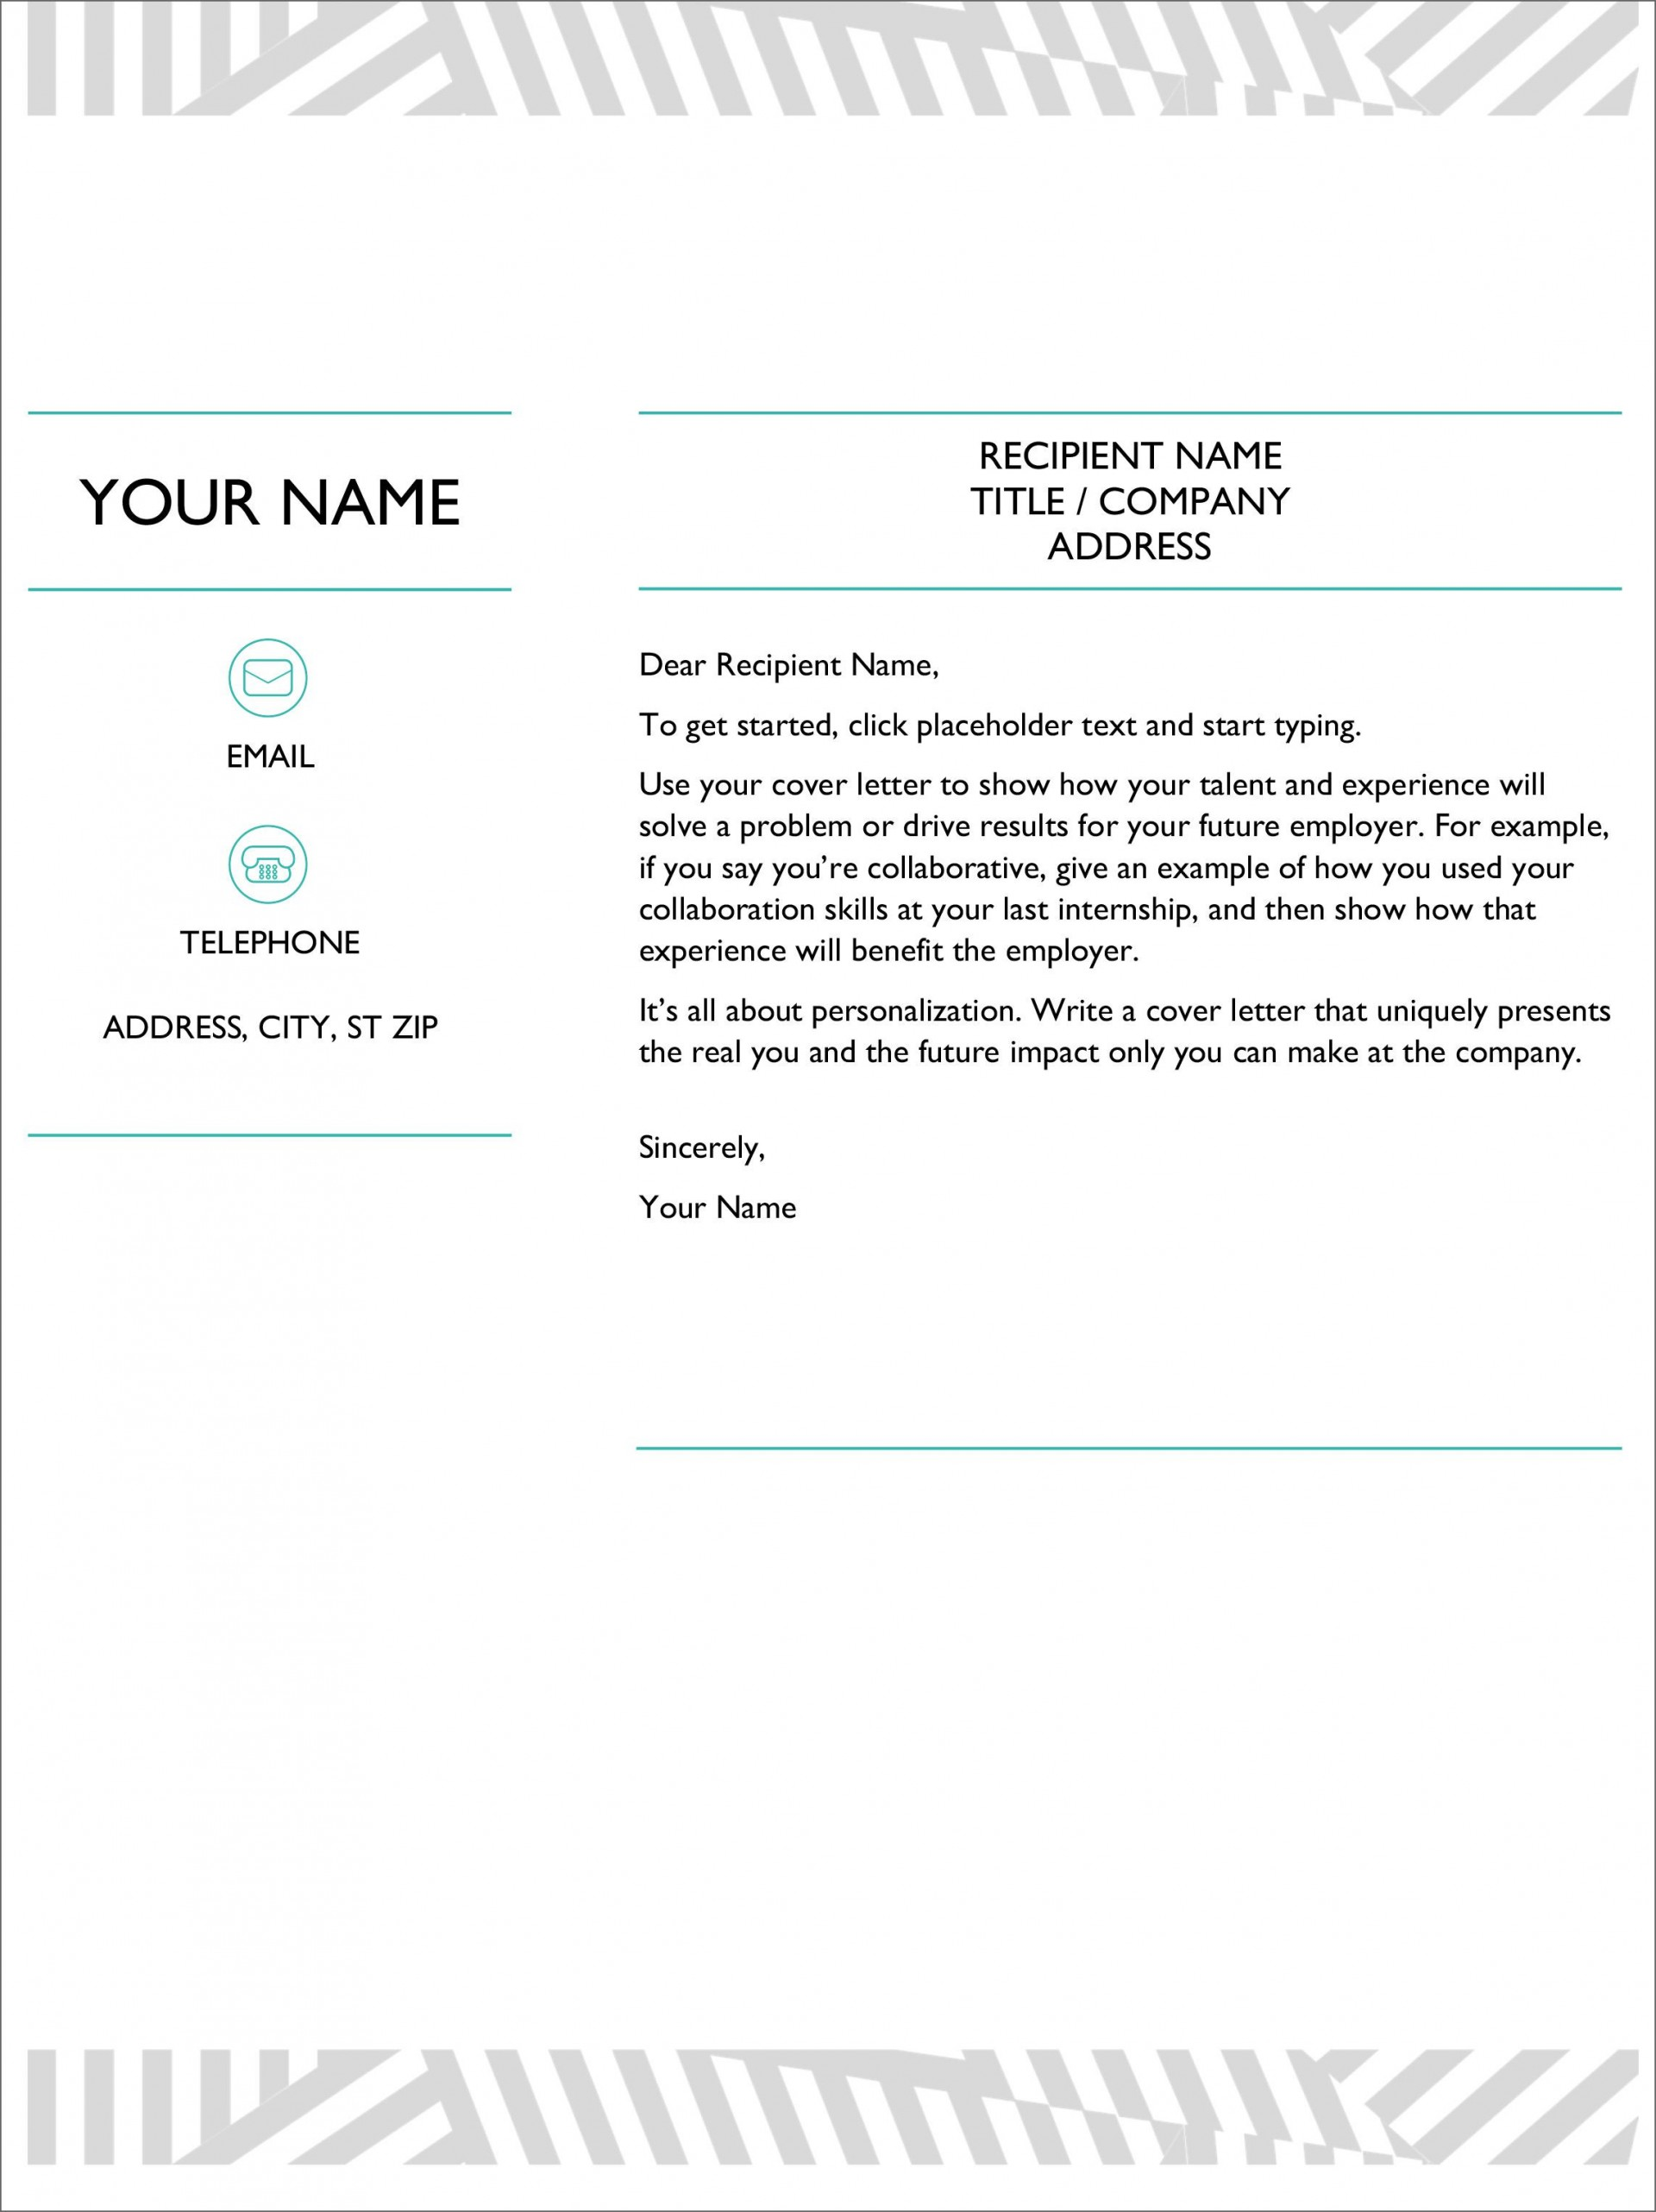 006 Unusual Cover Letter Template Microsoft Word Highest Clarity  2007 Fax1920